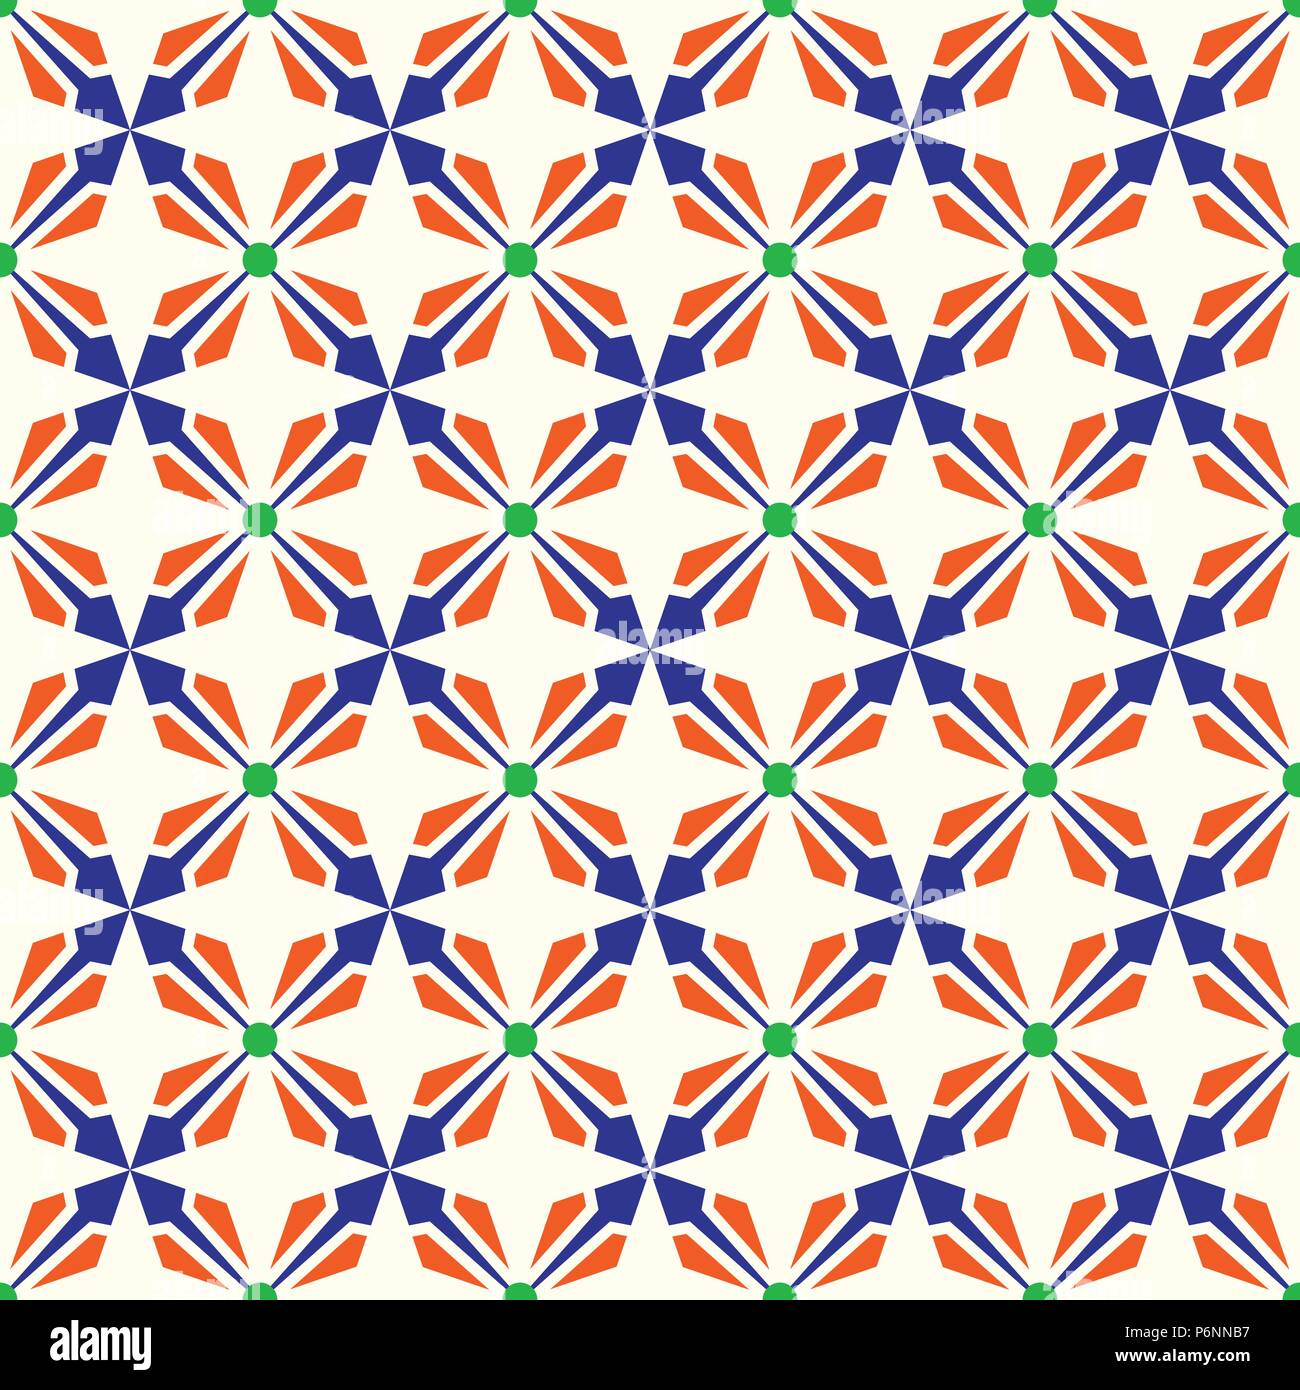 Dark blue and orange abstract arrow and circle in rectangle shape seamless pattern. Modern pattern for graphic or abstract design. - Stock Vector